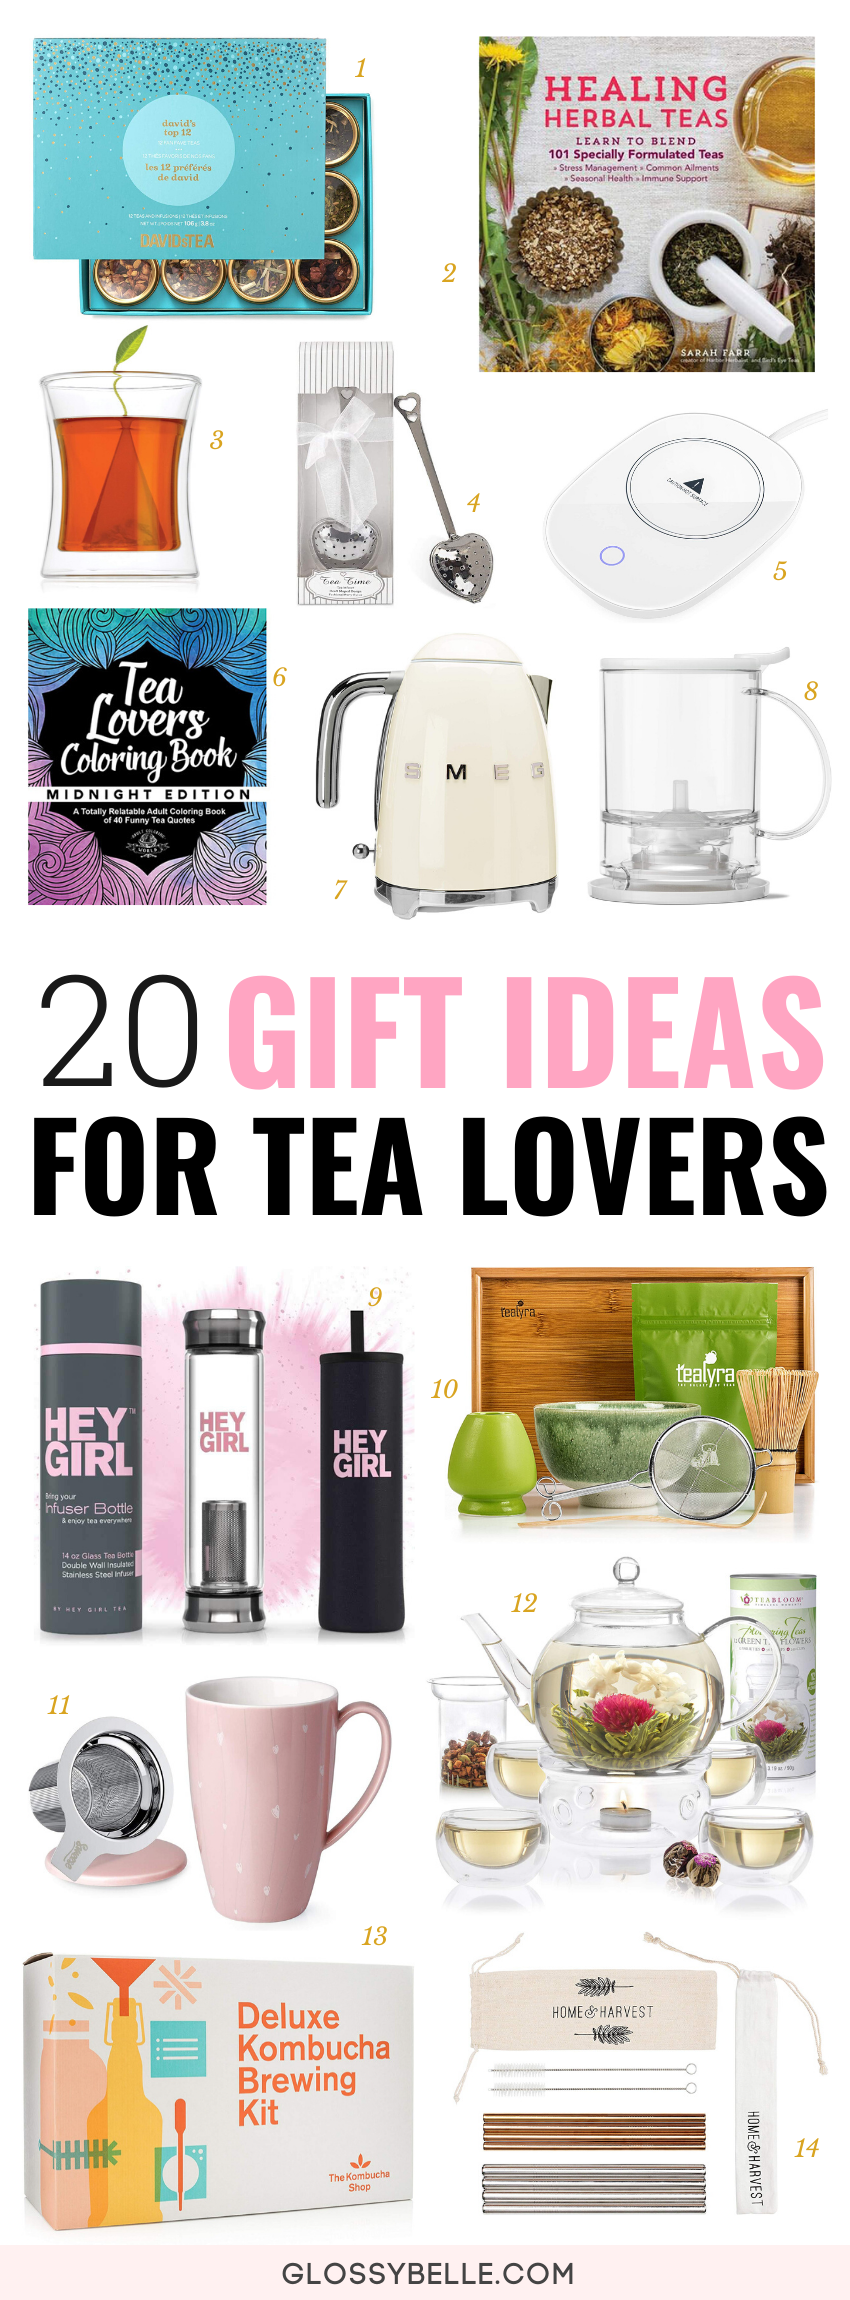 Looking for a thoughtful gift for the tea obsessed person in your life? Here are 20 great Christmas gift ideas for tea lovers. | healthy gifts | christmas gifts | gift ideas | christmas gift guide | holiday gifts | relaxation | health and wellness | stress relief | self-care gifts | detox | caffeine #giftguide #christmasgifts #giftideas #tea #tealover #wellness #health #selfcare